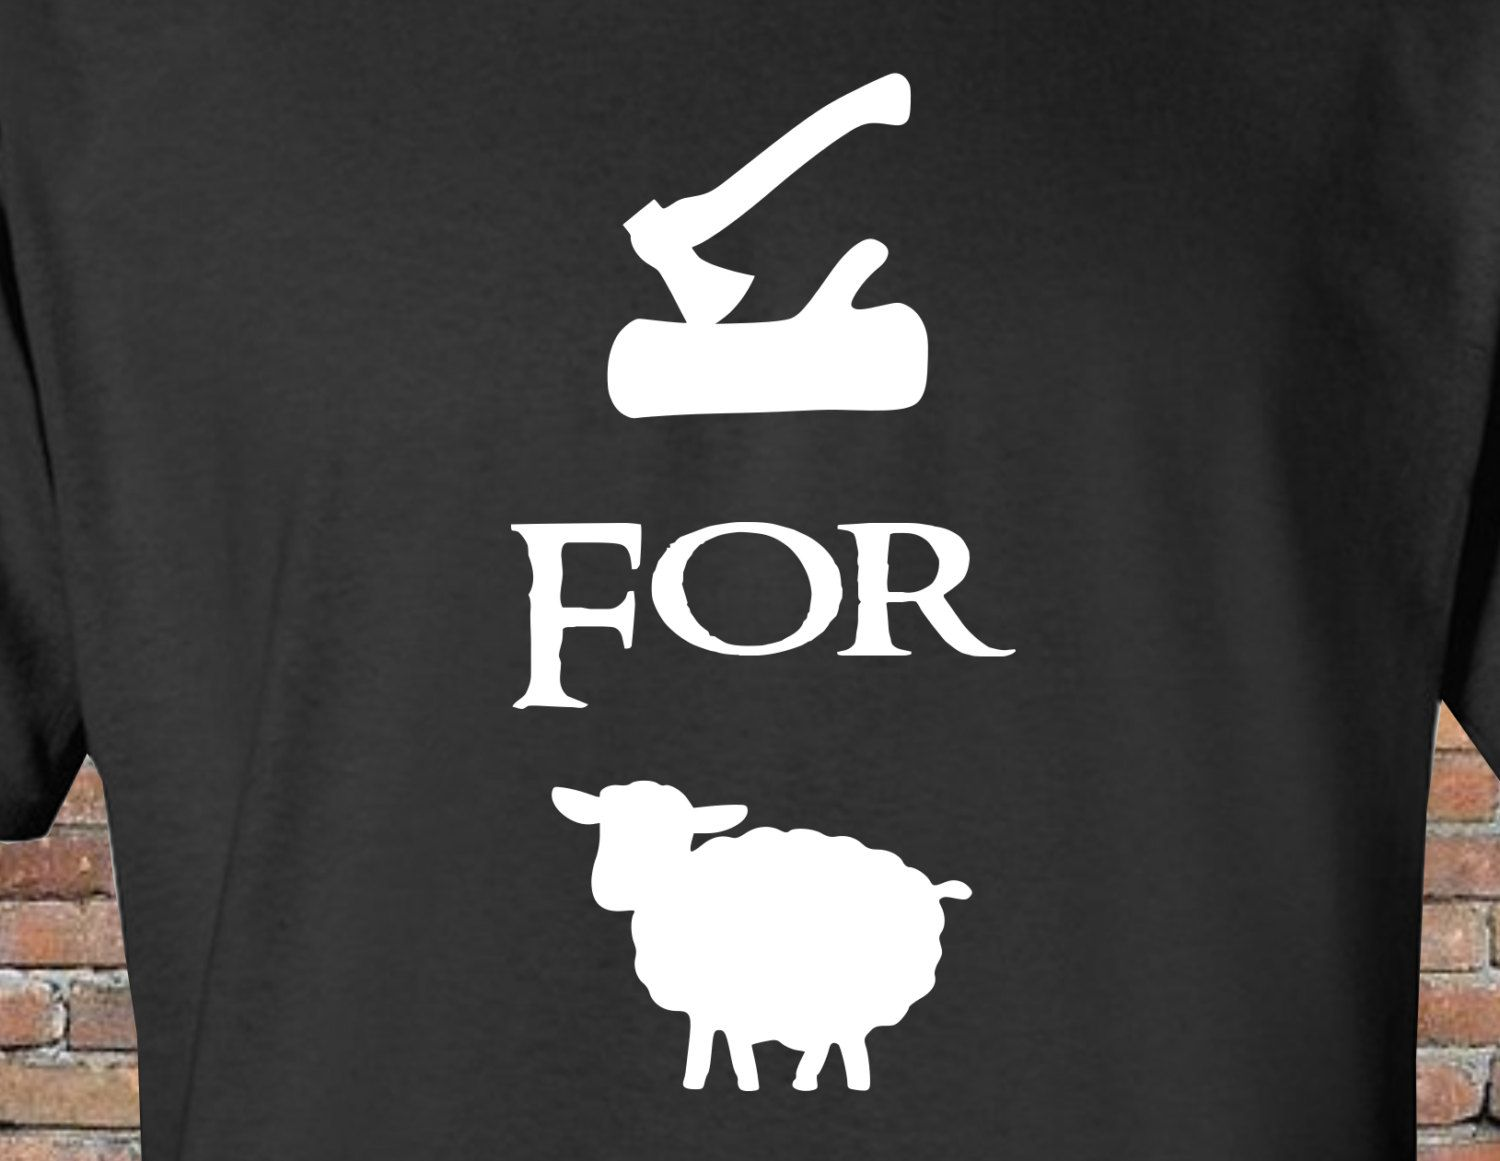 a63f87ff3 Wood For Sheep - Funny Shirt - Inspired by Settlers of Catan Game - Mens  Womens - Gift - Christmas by FireAntTees on Etsy